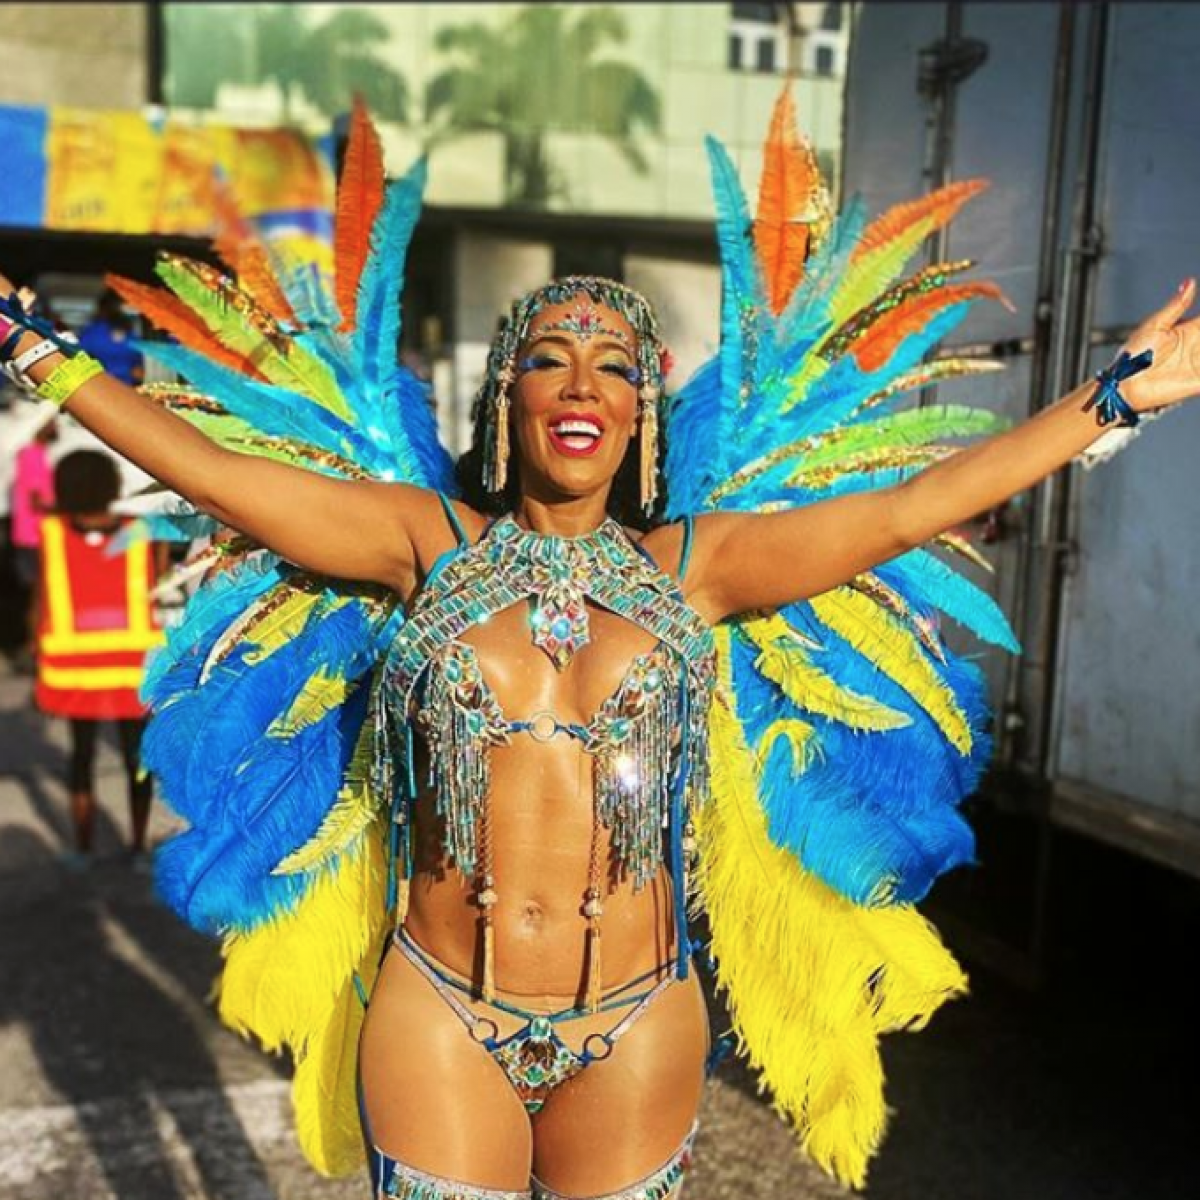 'Real Housewives' Star Tanya Sam Lived Her Best Life With Fans At Trinidad Carnival